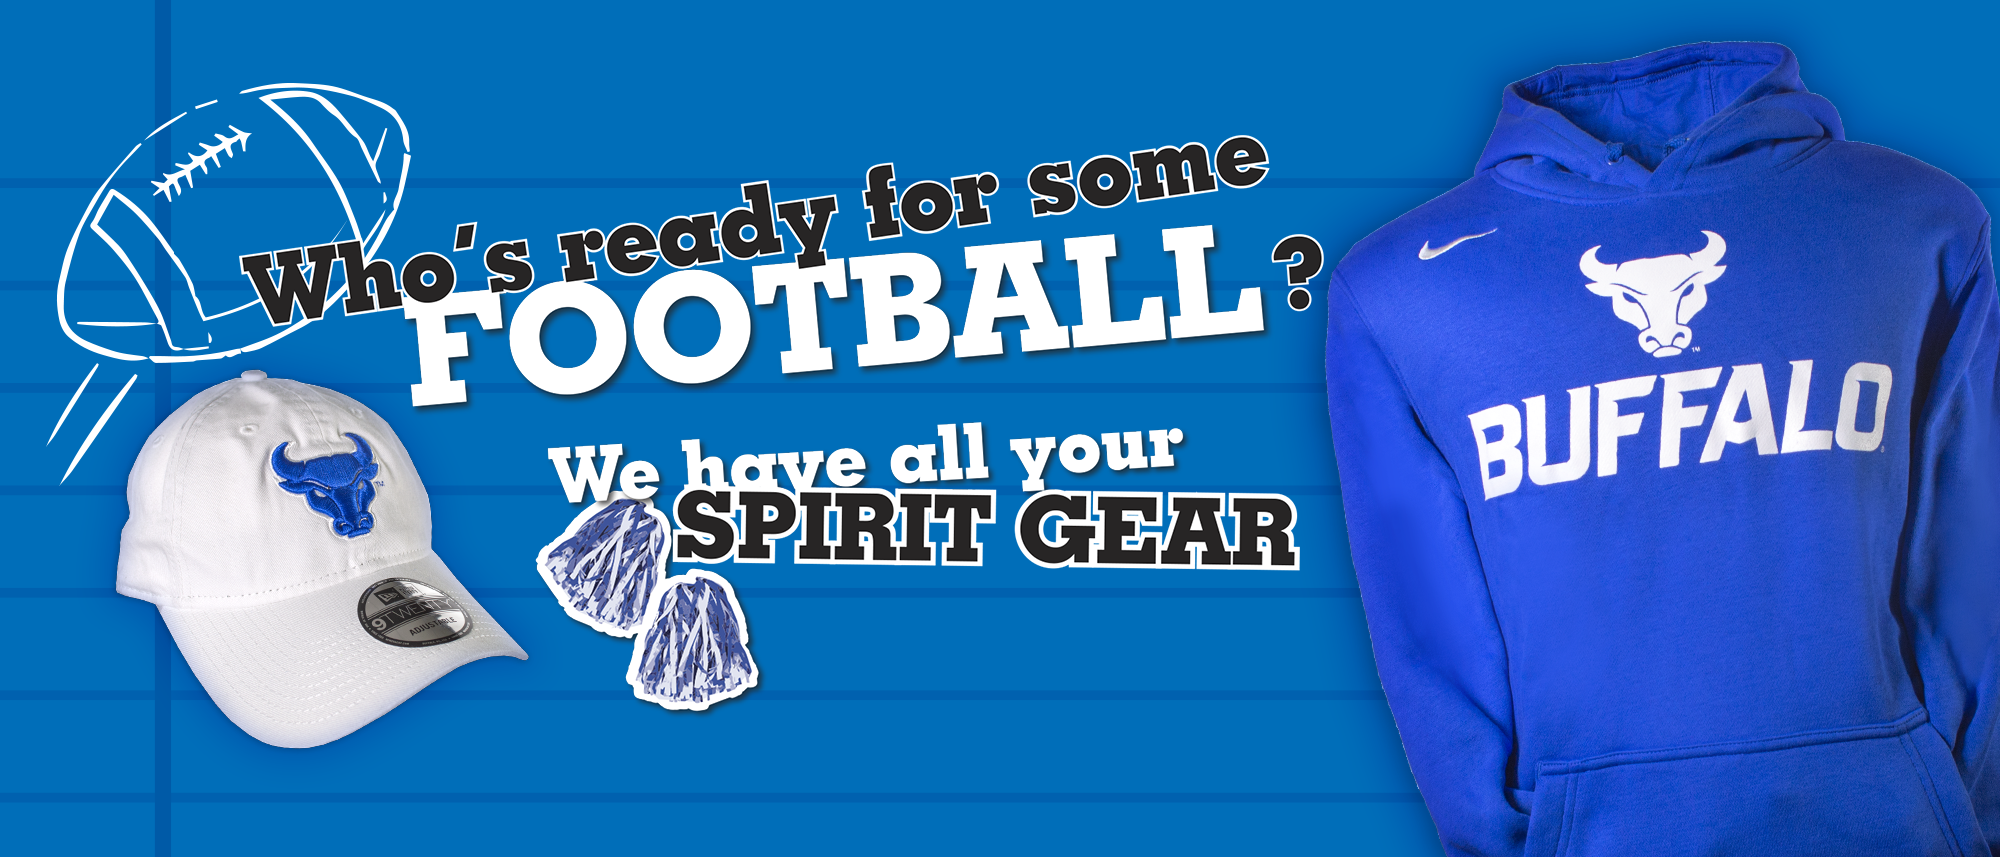 Who's ready for some football? We have all your spirit gear.